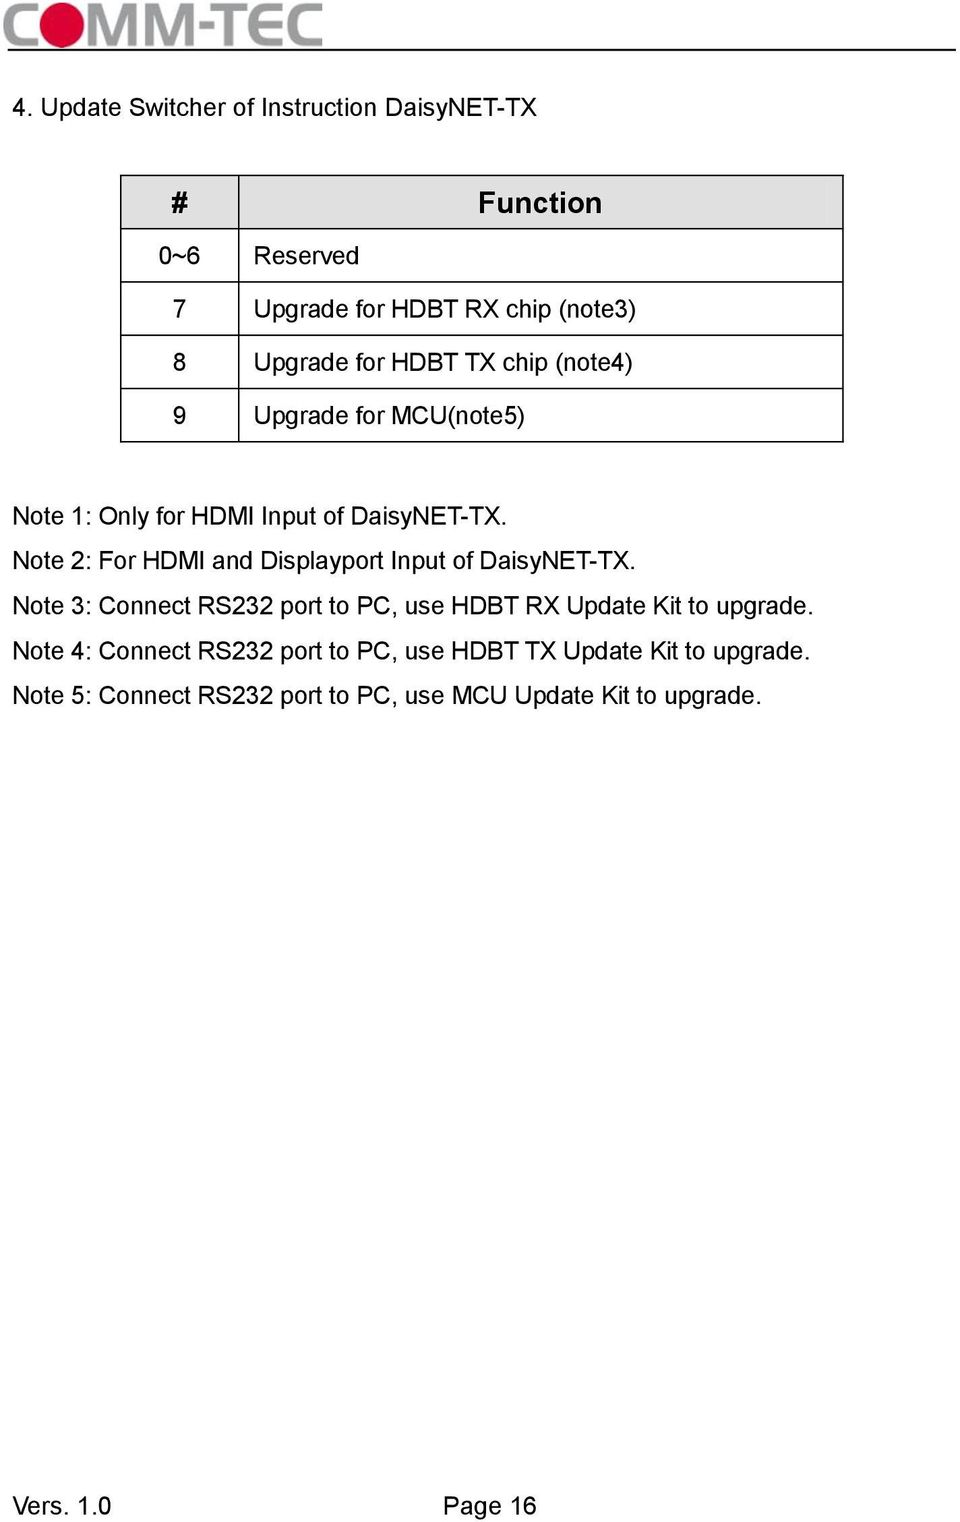 Note 2: For HDMI and Displayport Input of DaisyNET-TX.